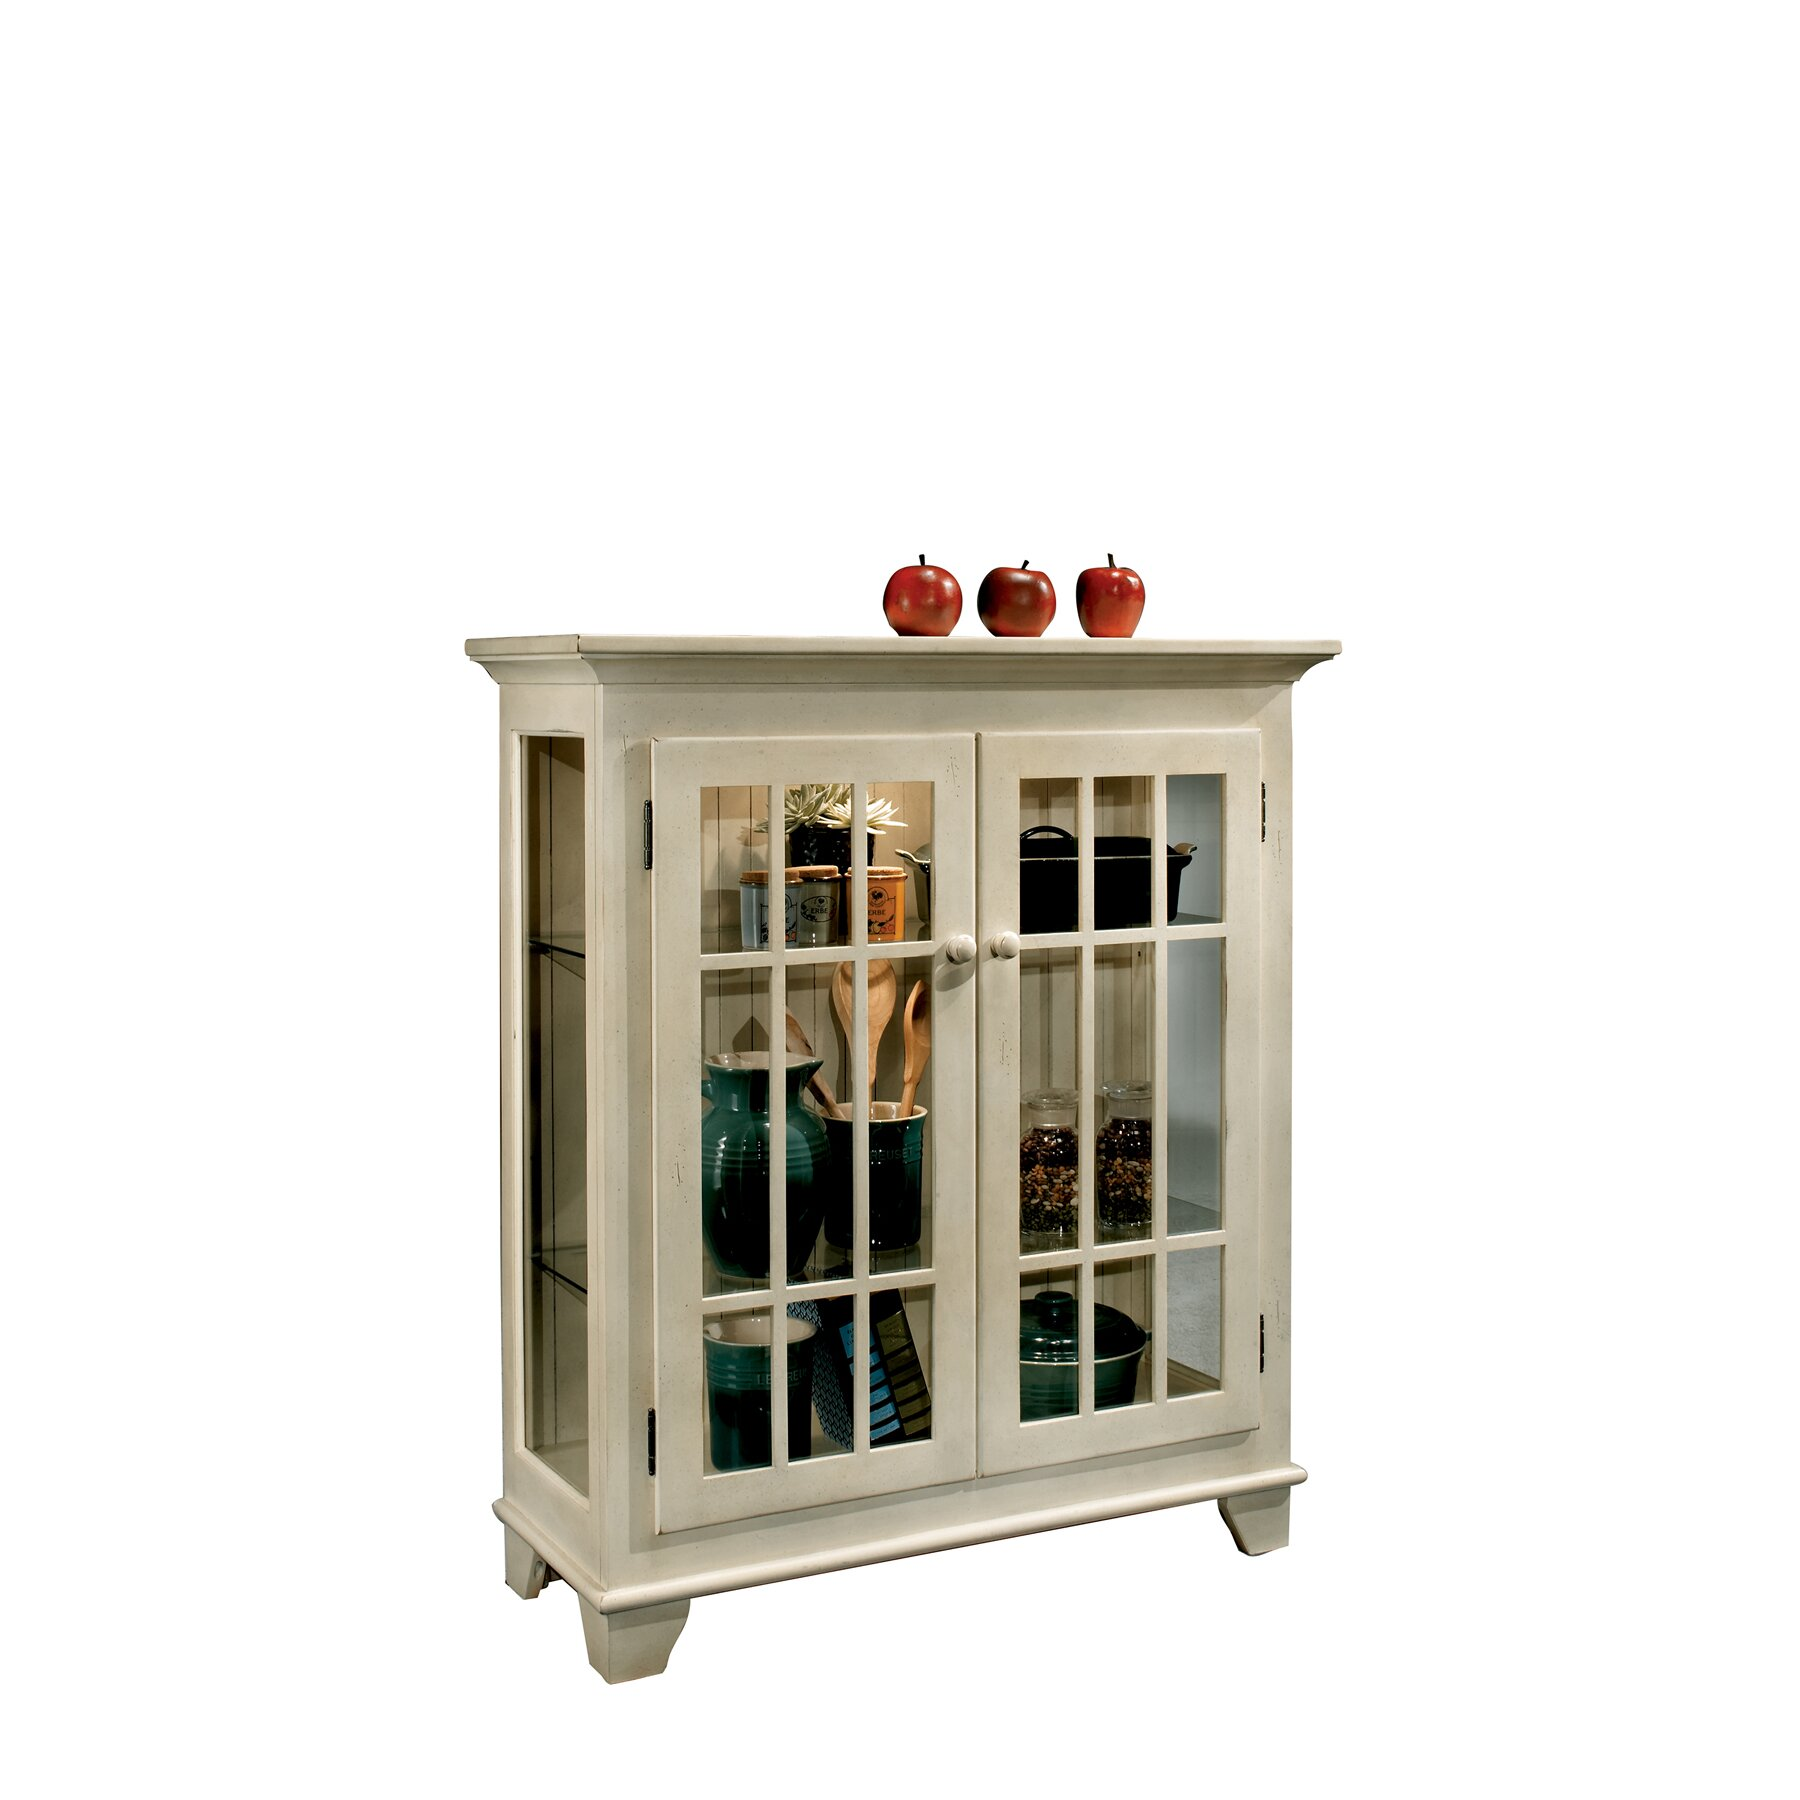 Bailey Cabinet Company Philip Reinisch Co Colortime Console Curio Cabinet Reviews